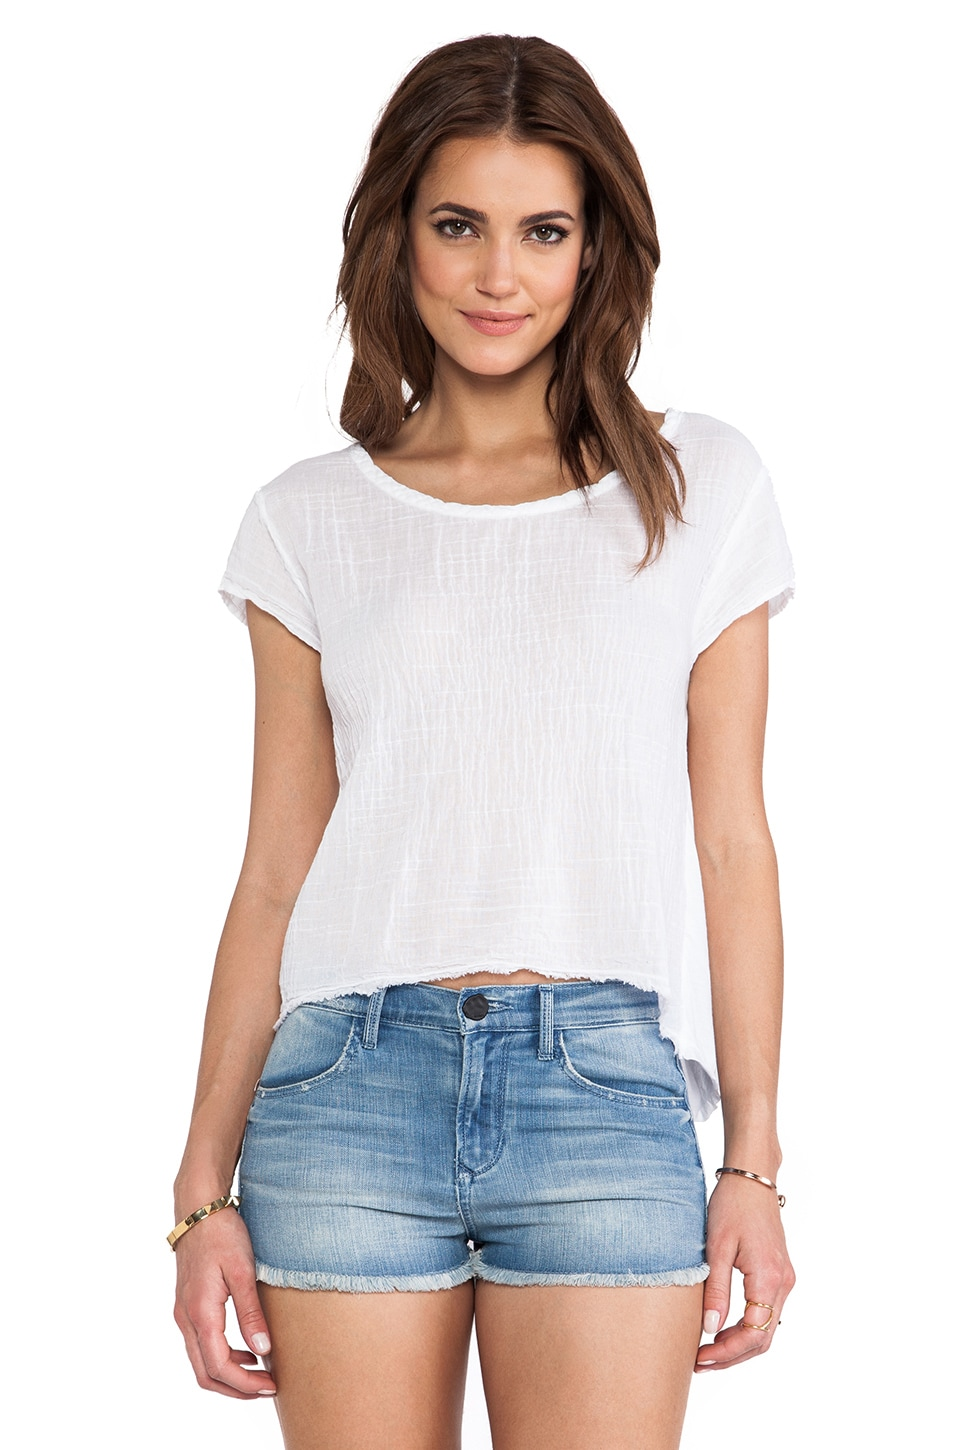 Velvet by Graham & Spencer Deion Sheer Jersey w/ Contrast Tee in White